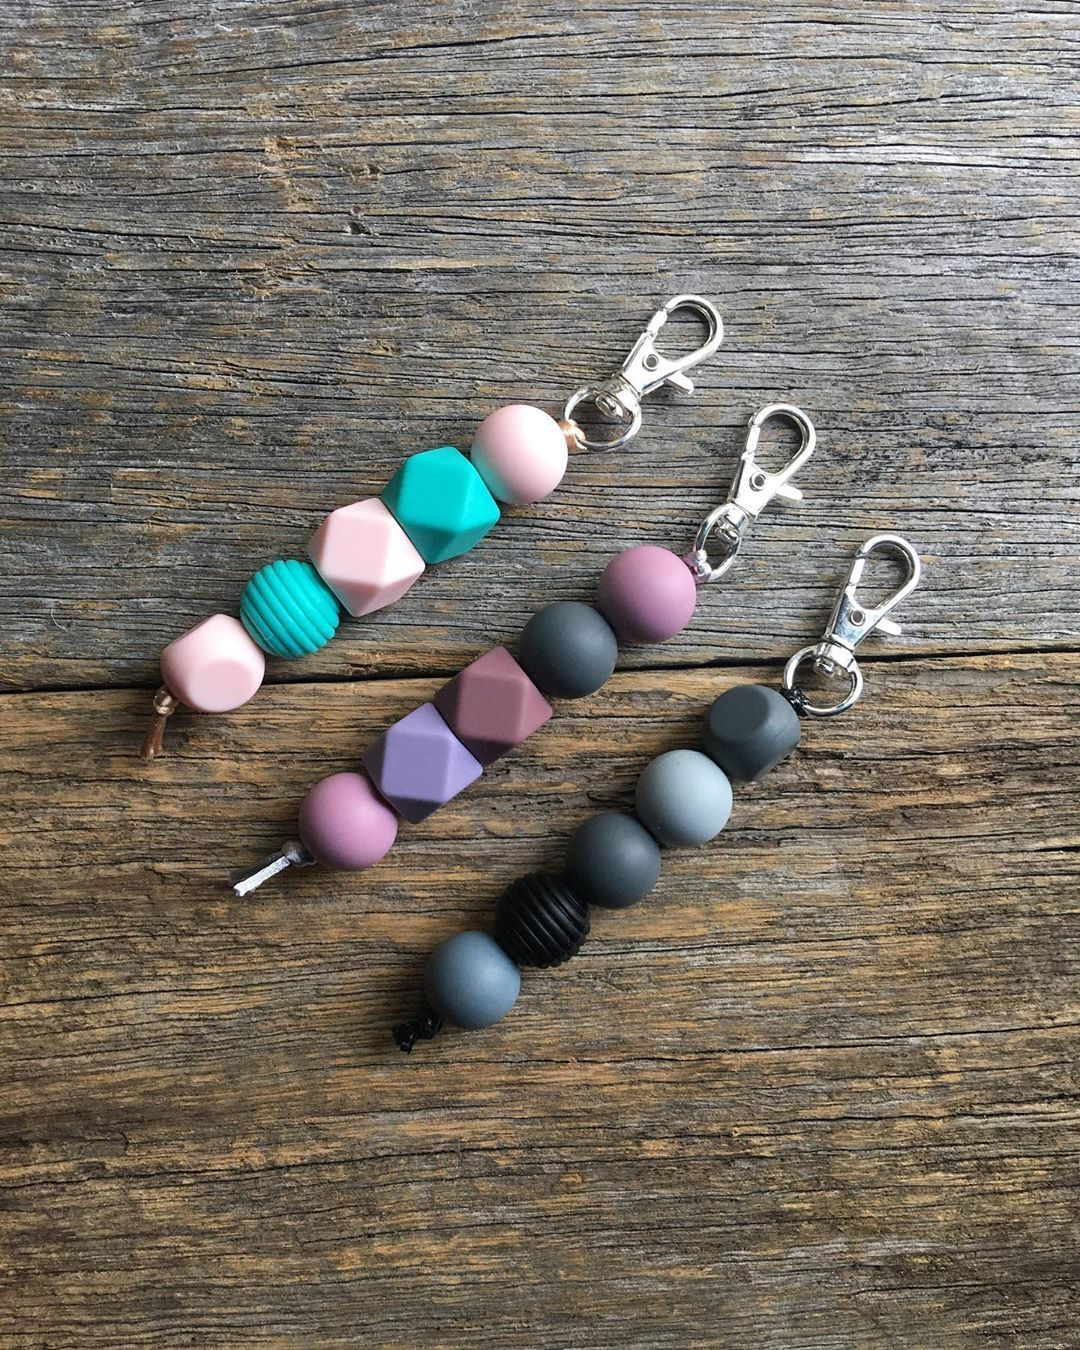 More silicone bead keychains 🗝✨ $8 each plus postage ✨  Custom orders available  Pm to purchase! ✨  #keychain #silicone #siliconebeads #buyfromthebush #local #tasmania #buylocal #handmade #handmadewithlove #smallbusiness #australia #custom #create #insta #art #shopsmall #shopnow